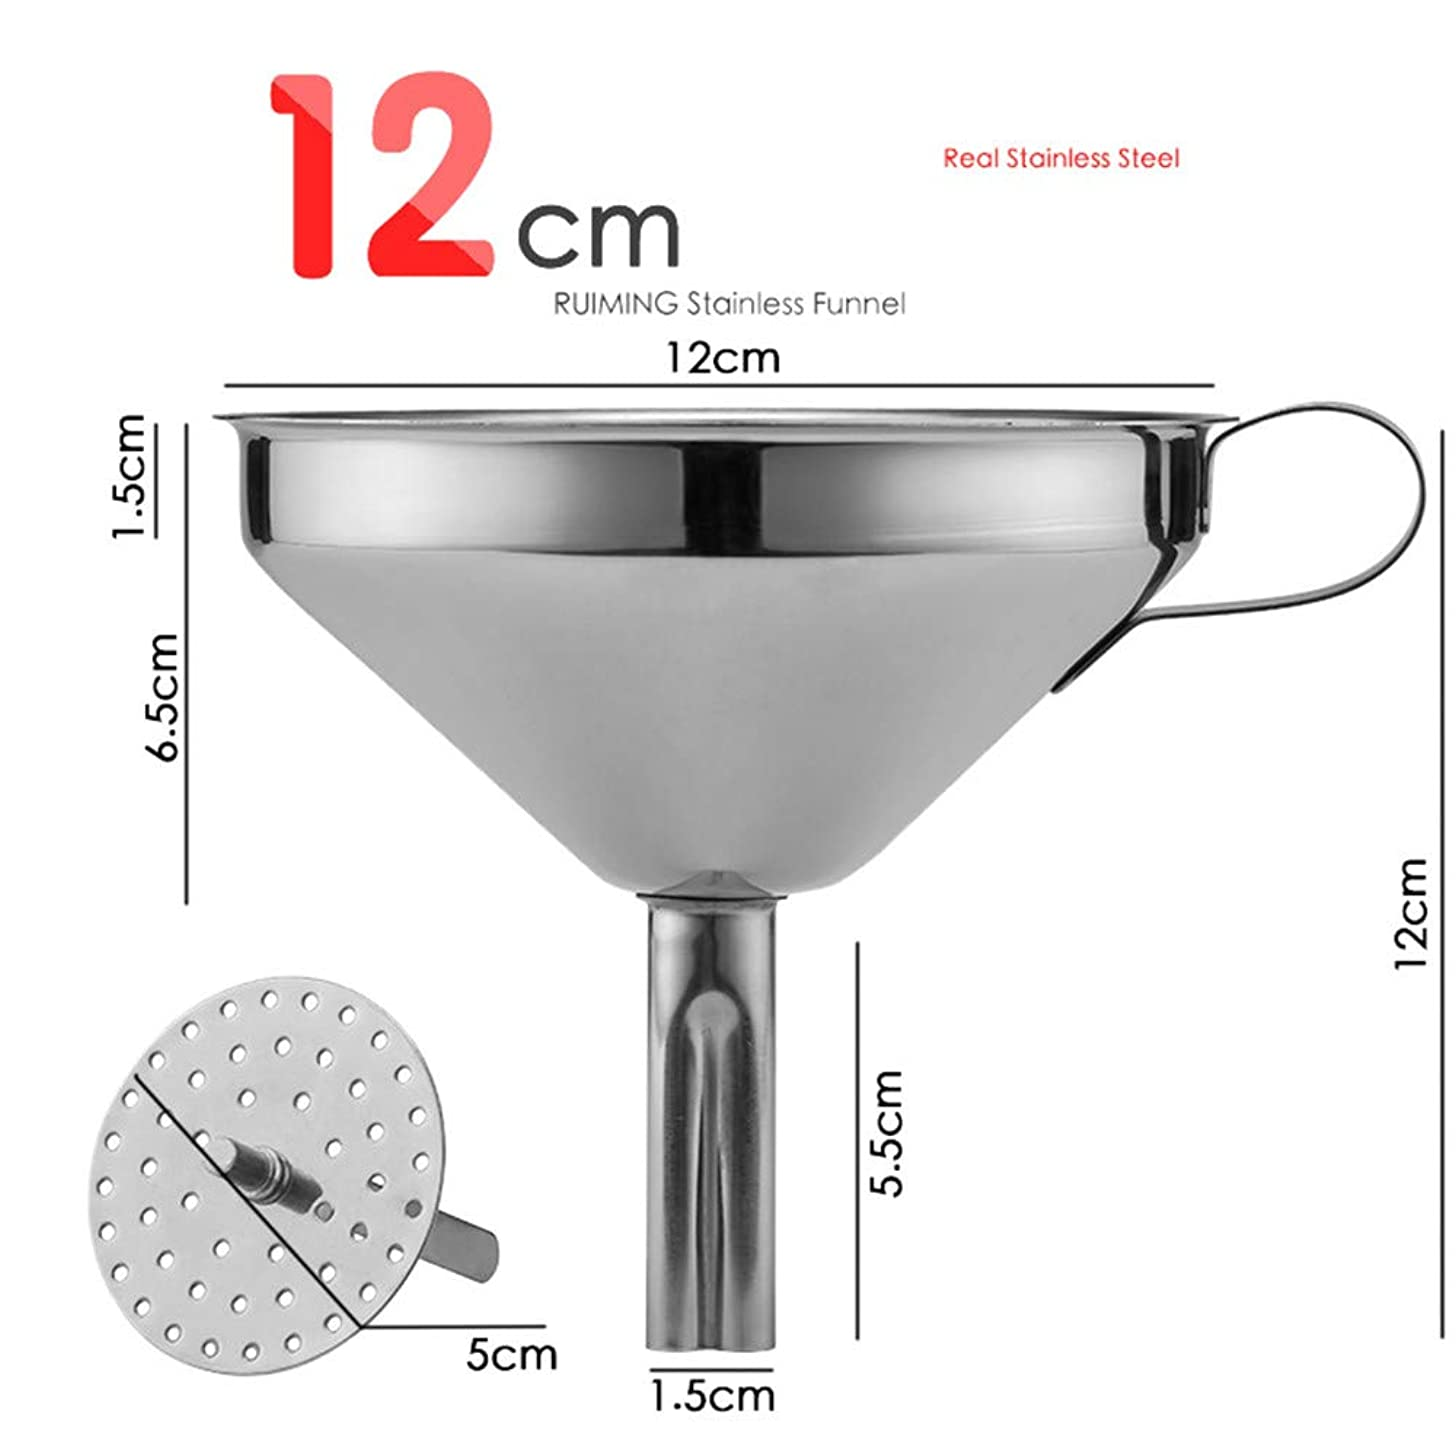 Stainless Steel Kitchen Funnel All Kinds Of Hip Flasks Food Grade Metal Funnels for Transferring of Liquid Powder